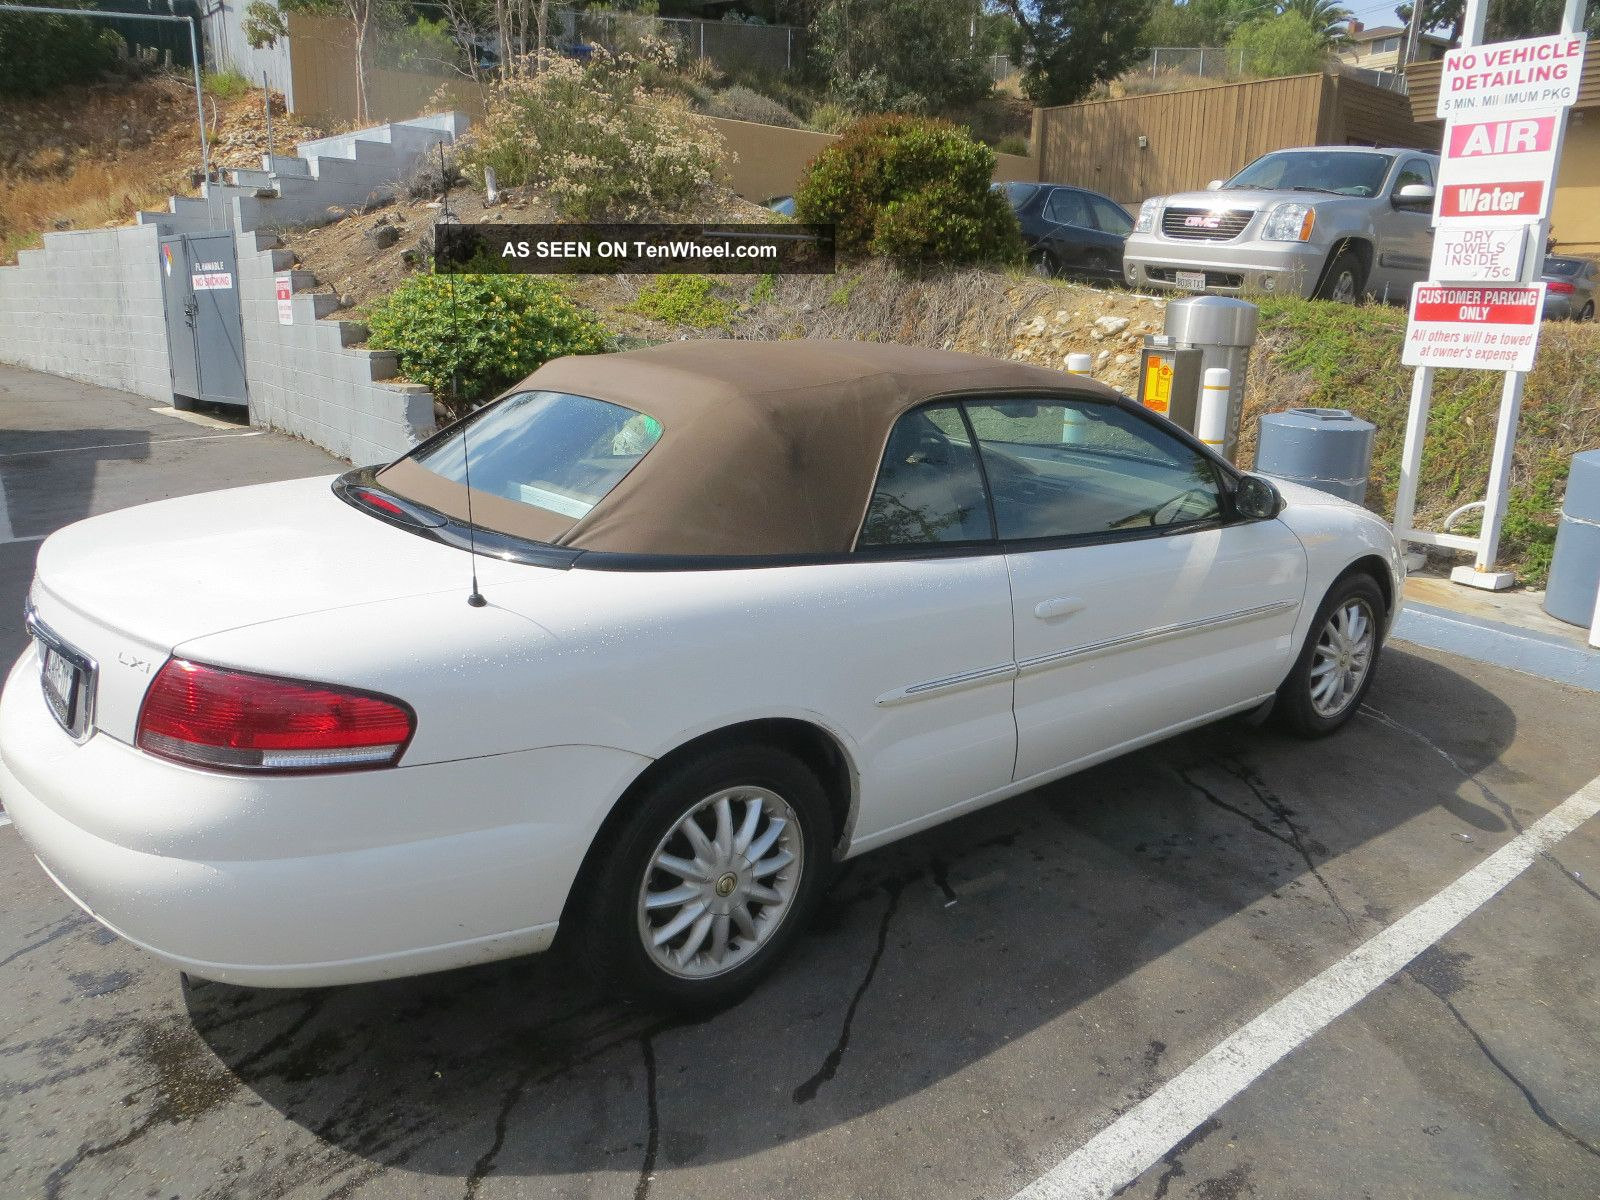 2002 chrysler sebring lxi convertible 2 door 2 7l sebring photo. Cars Review. Best American Auto & Cars Review